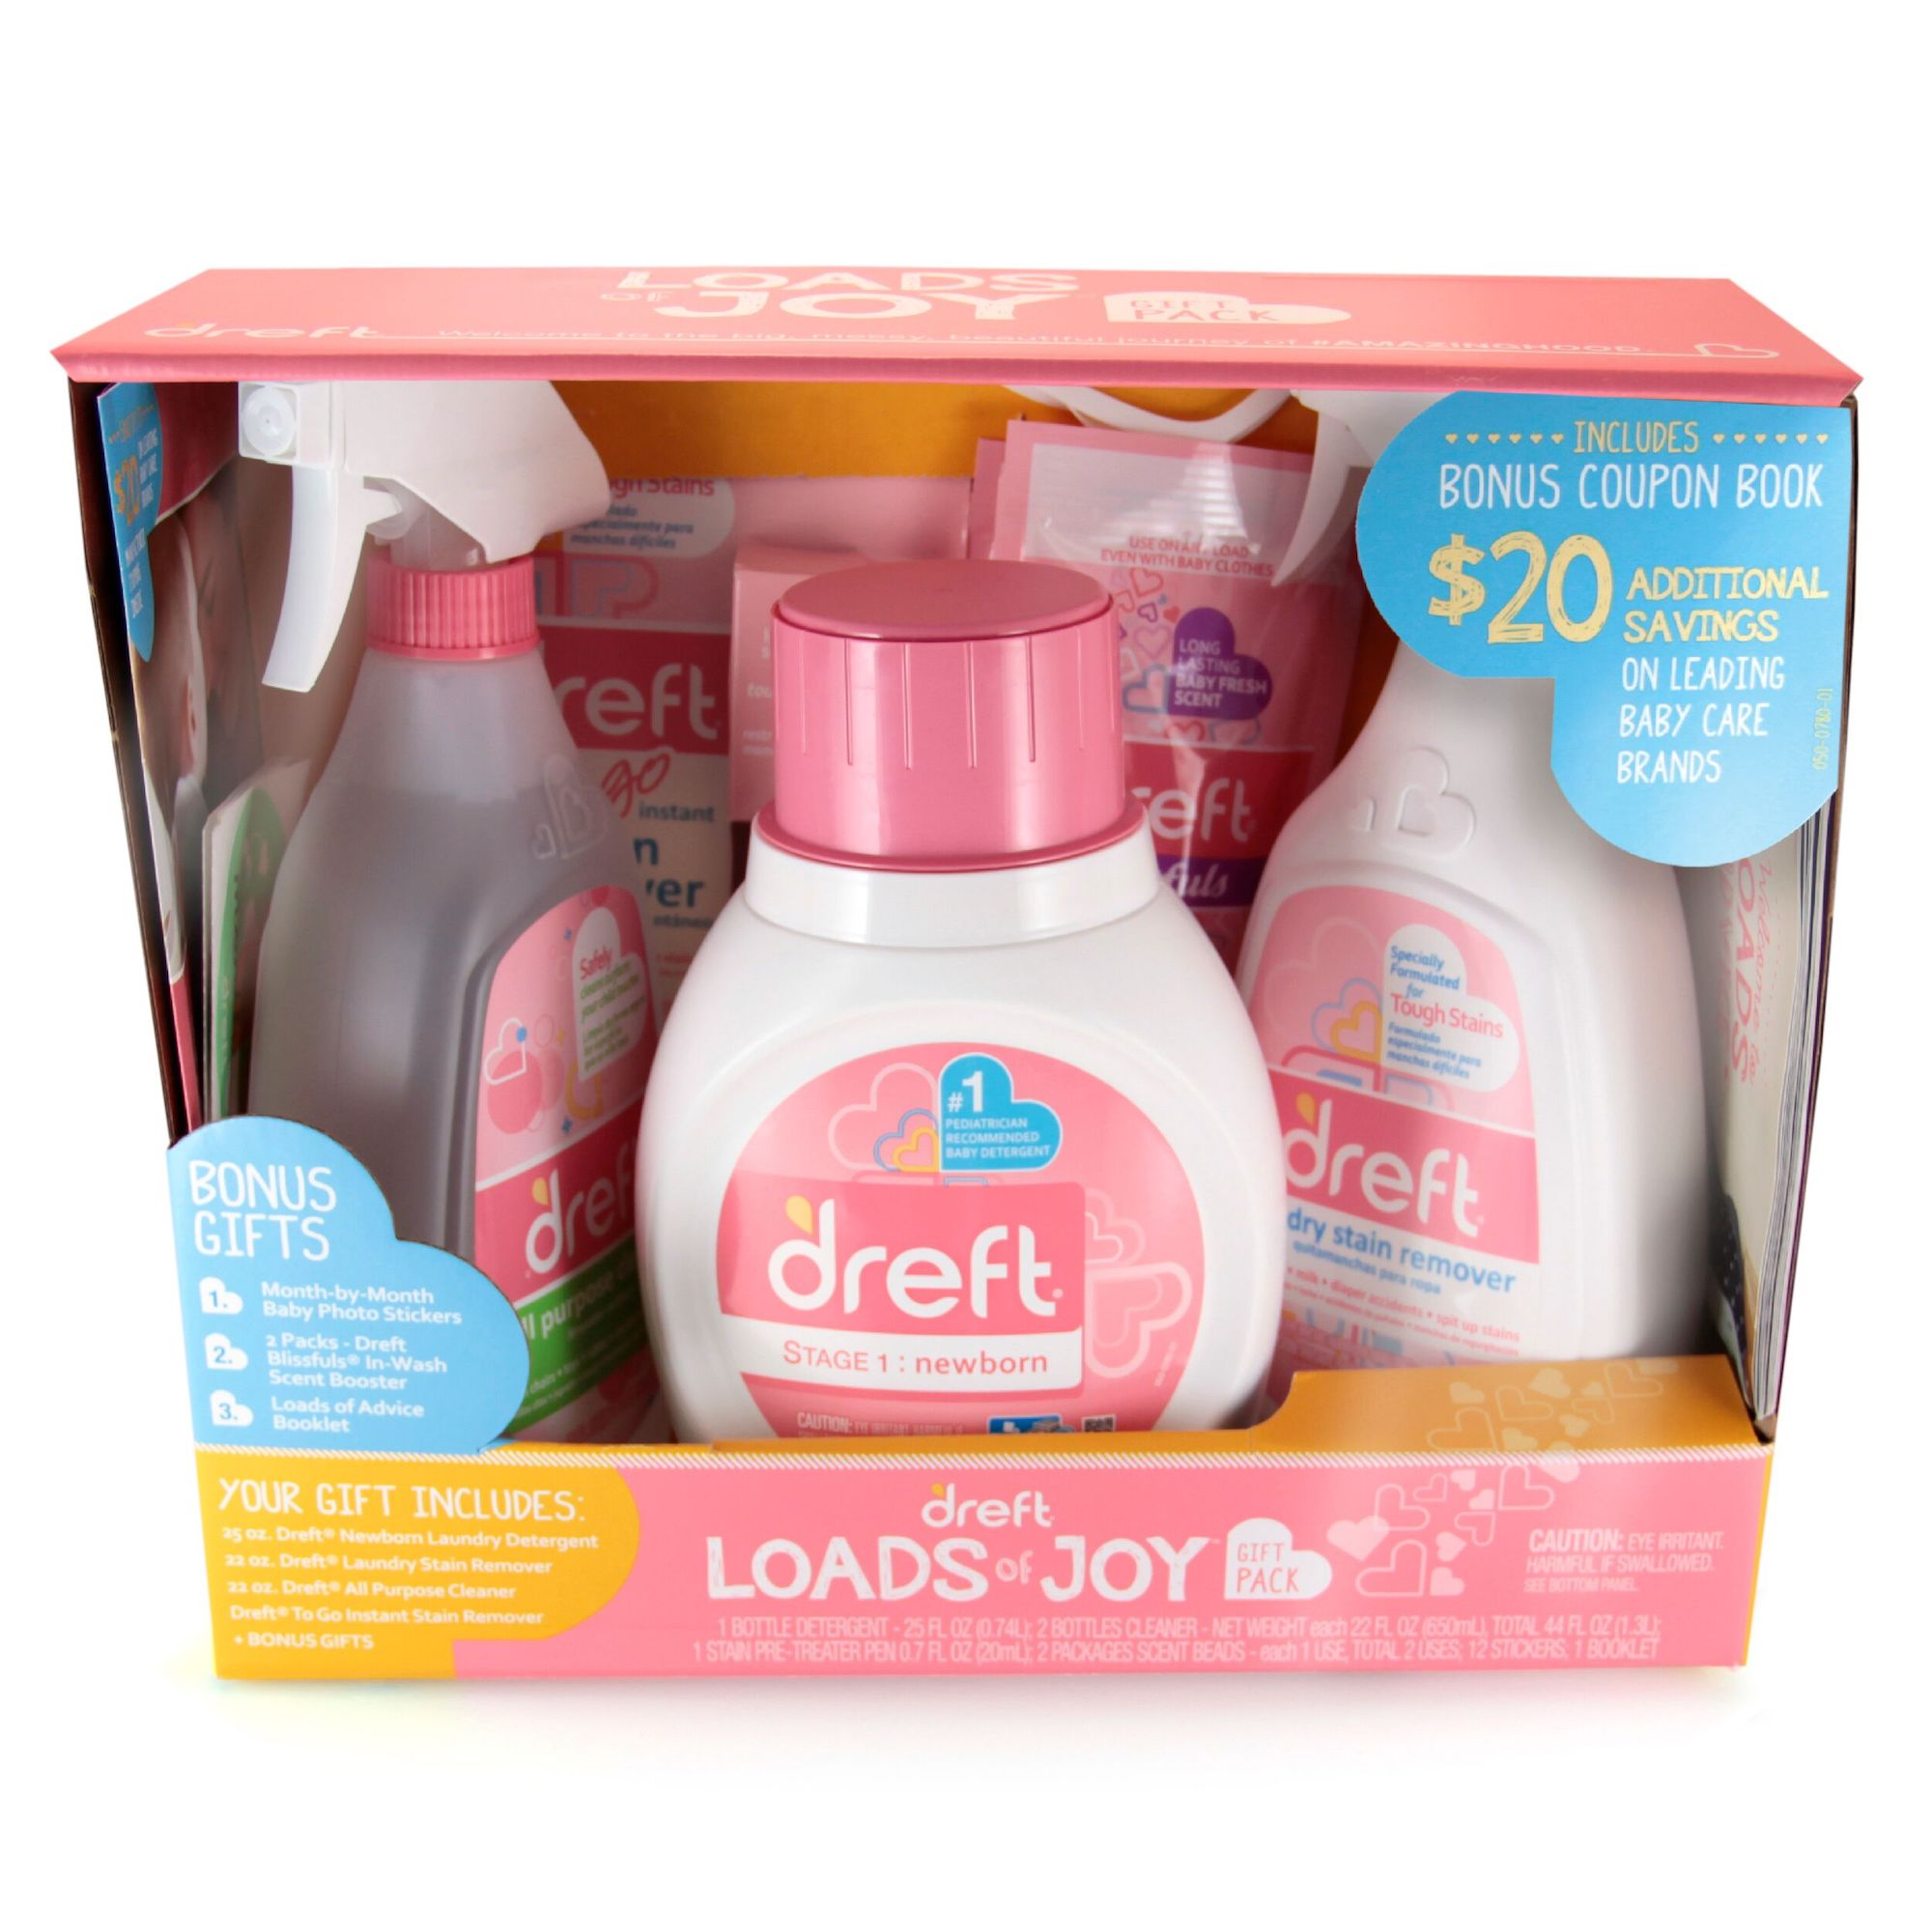 Dreft Loads Of Joy Gift Pack Laundry Set With Baby Laundry Detergent And Stain Removers Walmart Com Walmart Com